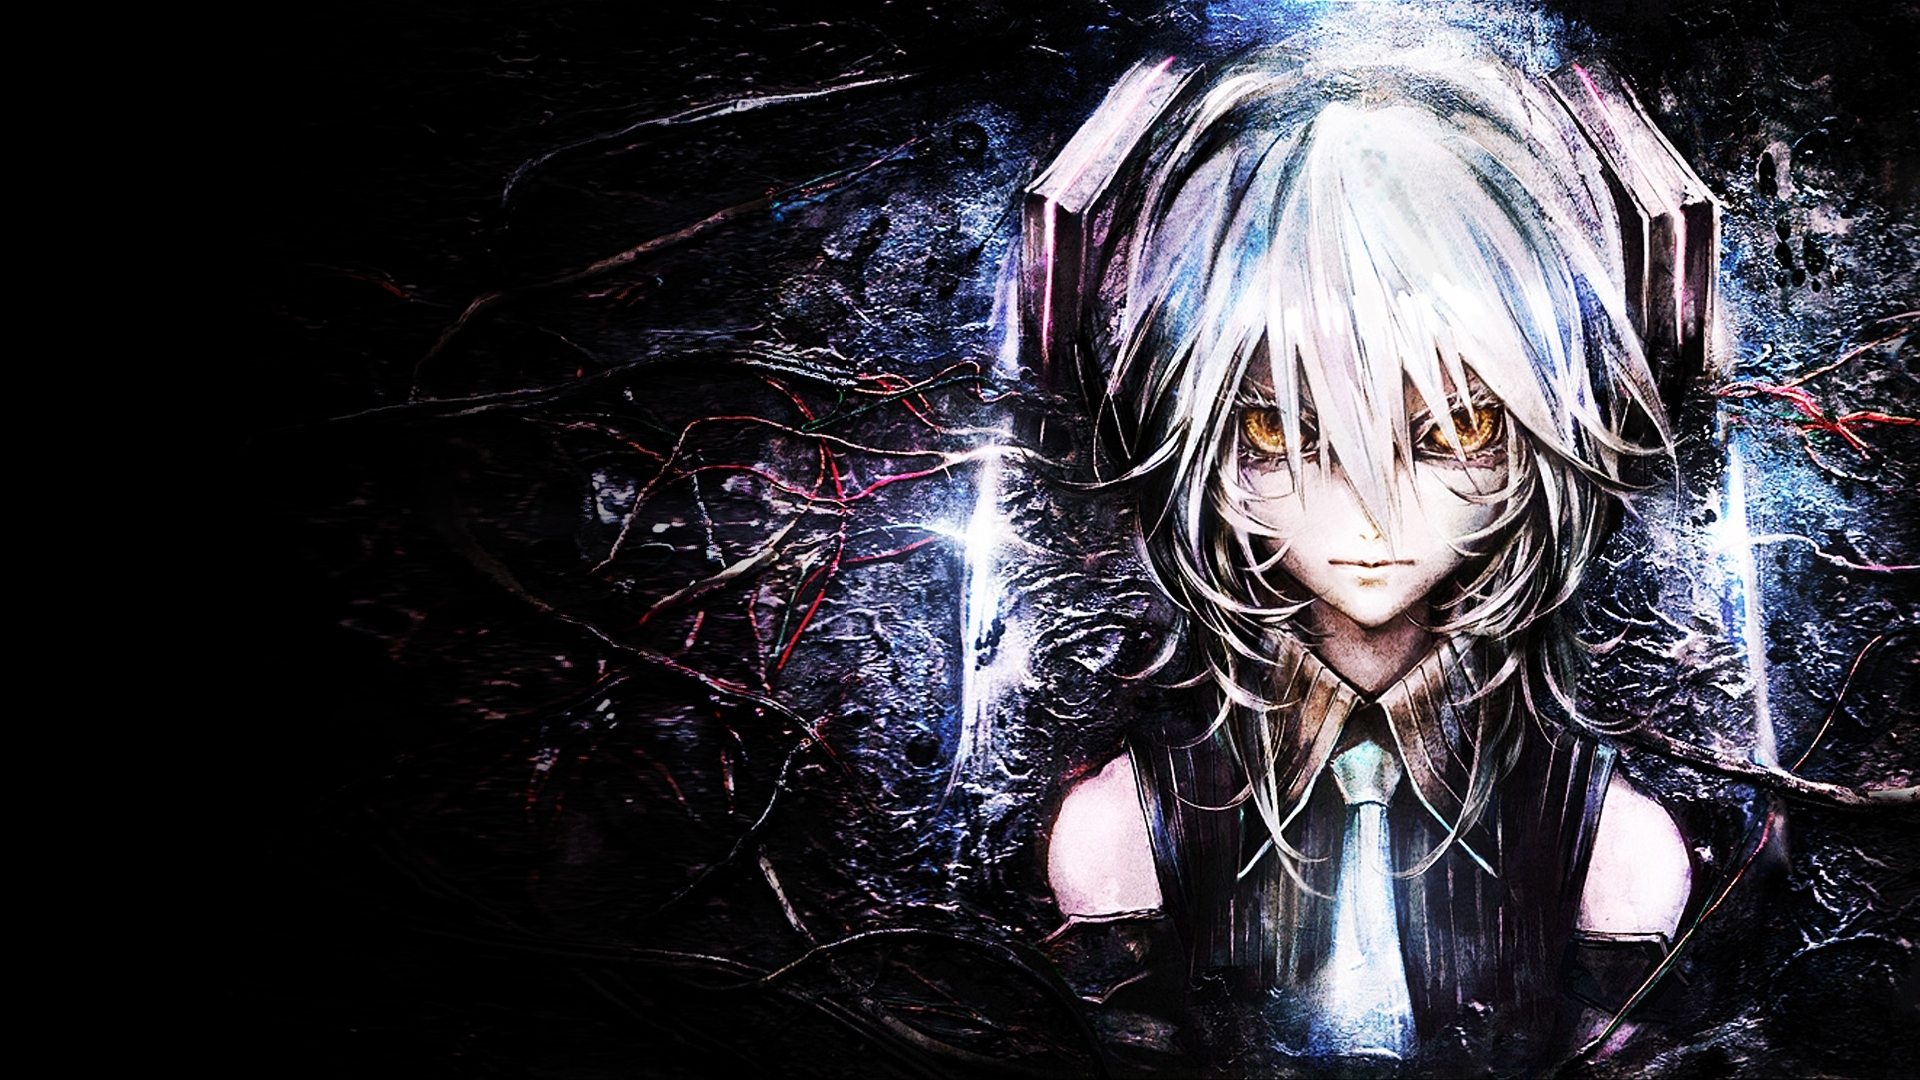 anime wallpaper hd backgrounds cool for desktop androids